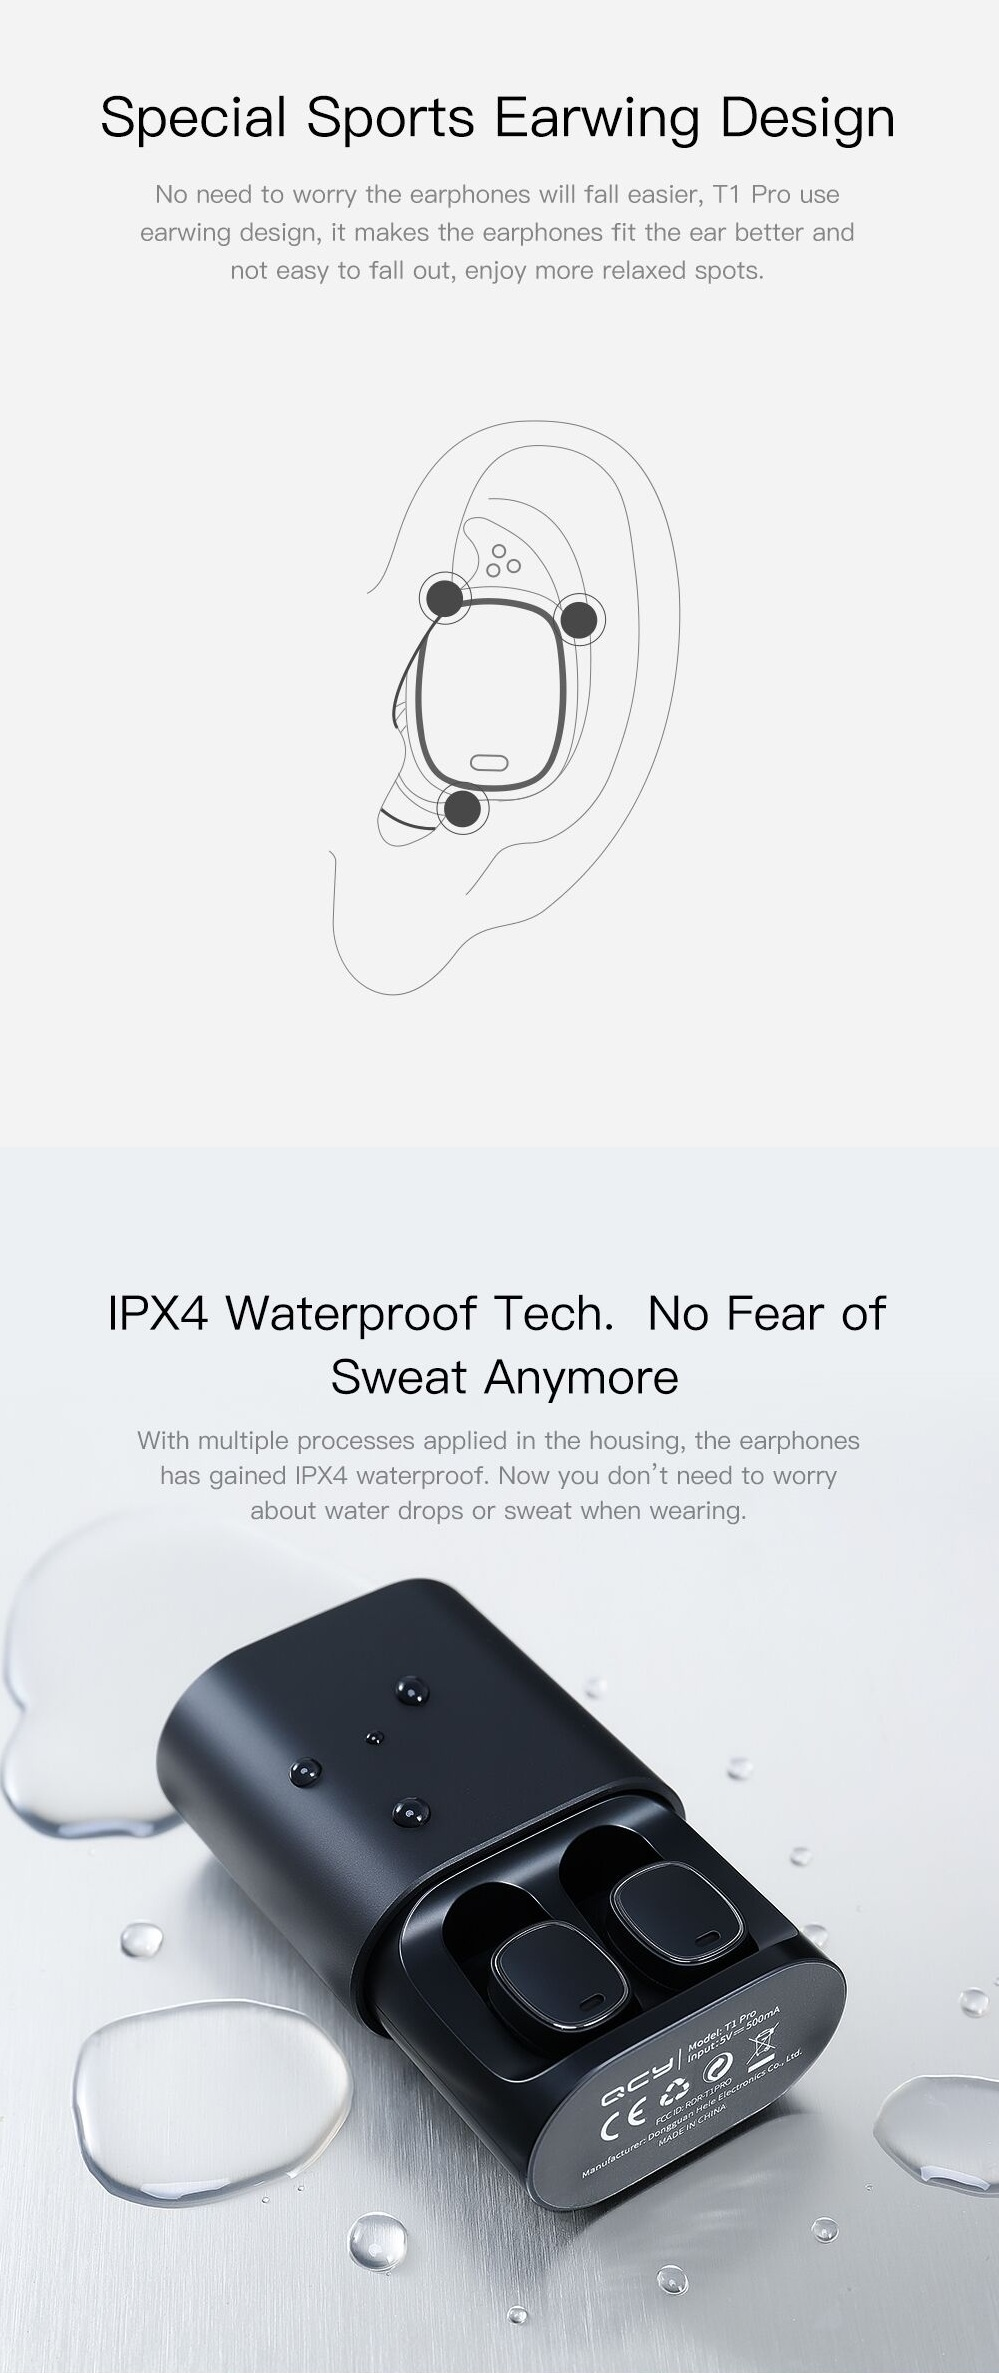 [True Wireless] QCY T1 PRO TWS Dual Bluetooth Earphones IPX4 Waterproof Headphones with Charging Box